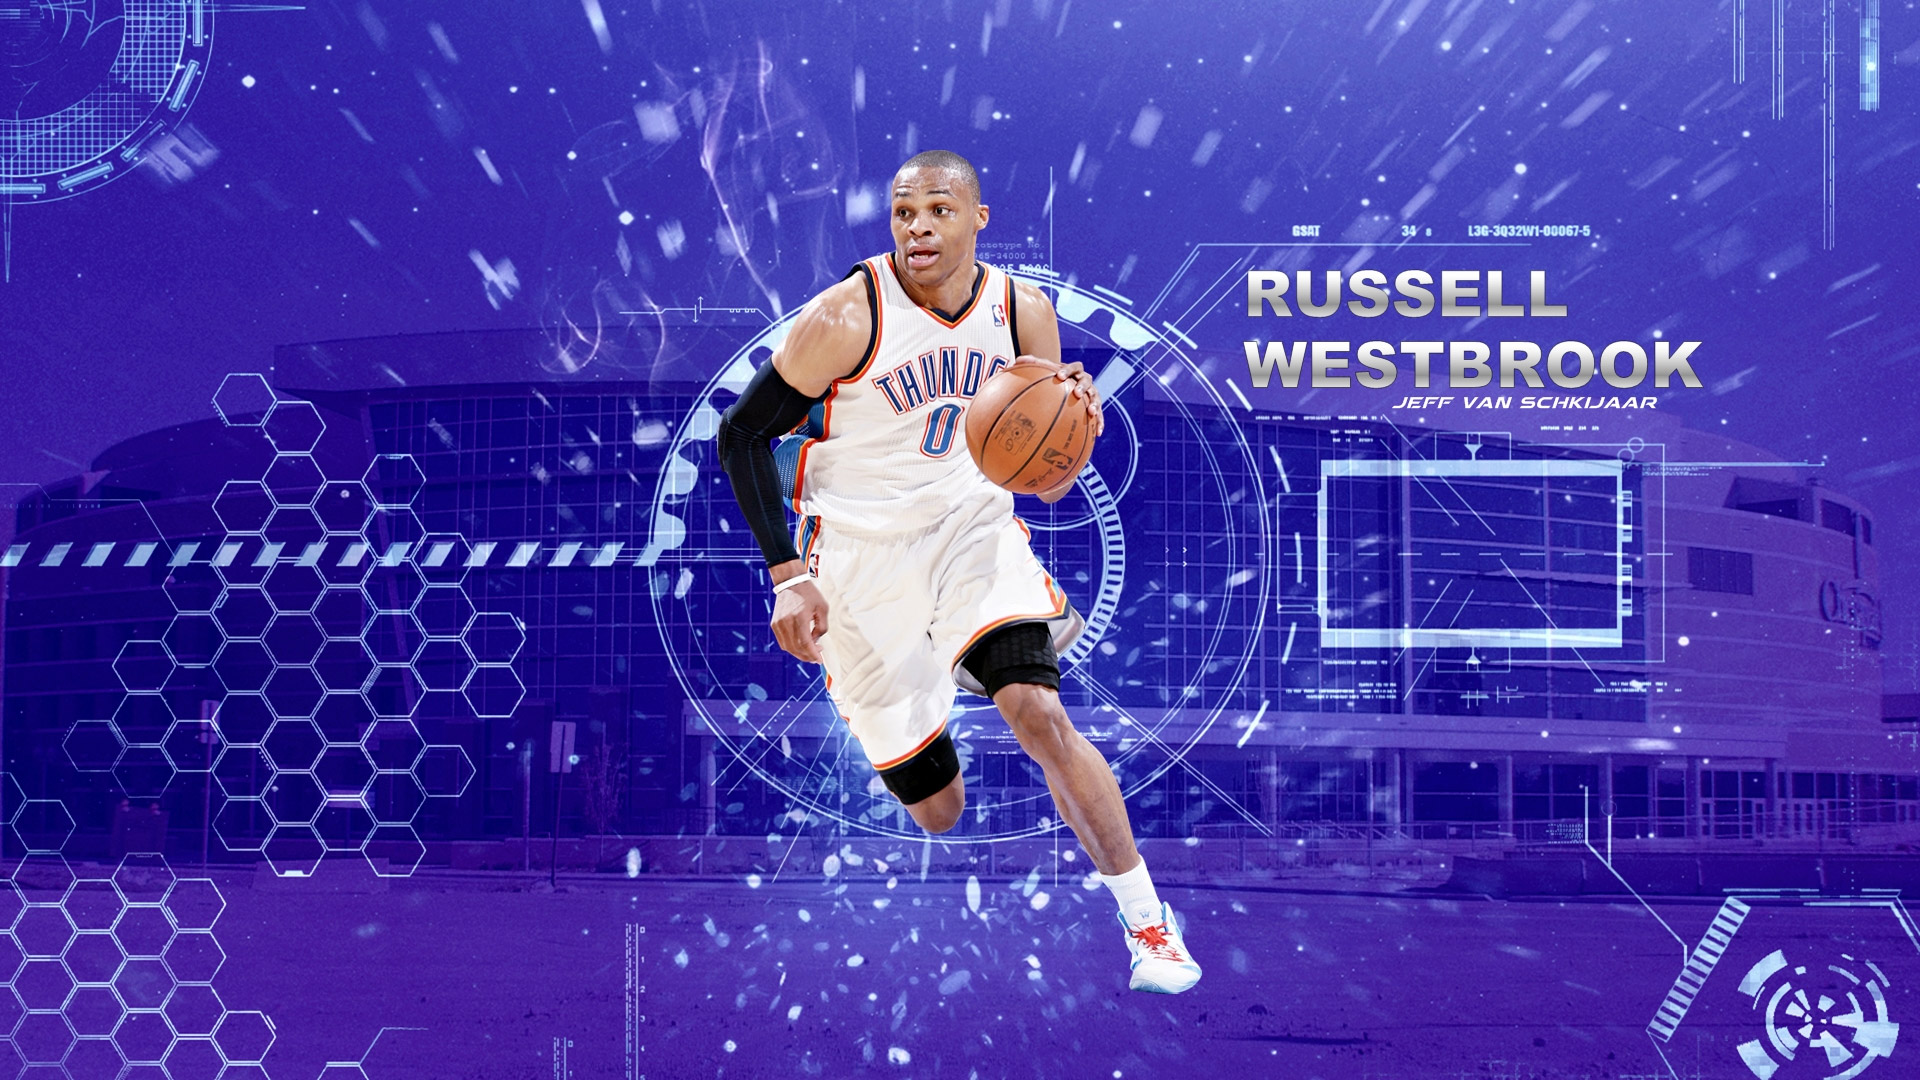 Russell westbrook wallpaper iphone wallpapersafari - Russell Westbrook Wallpapers 52 Wallpapers